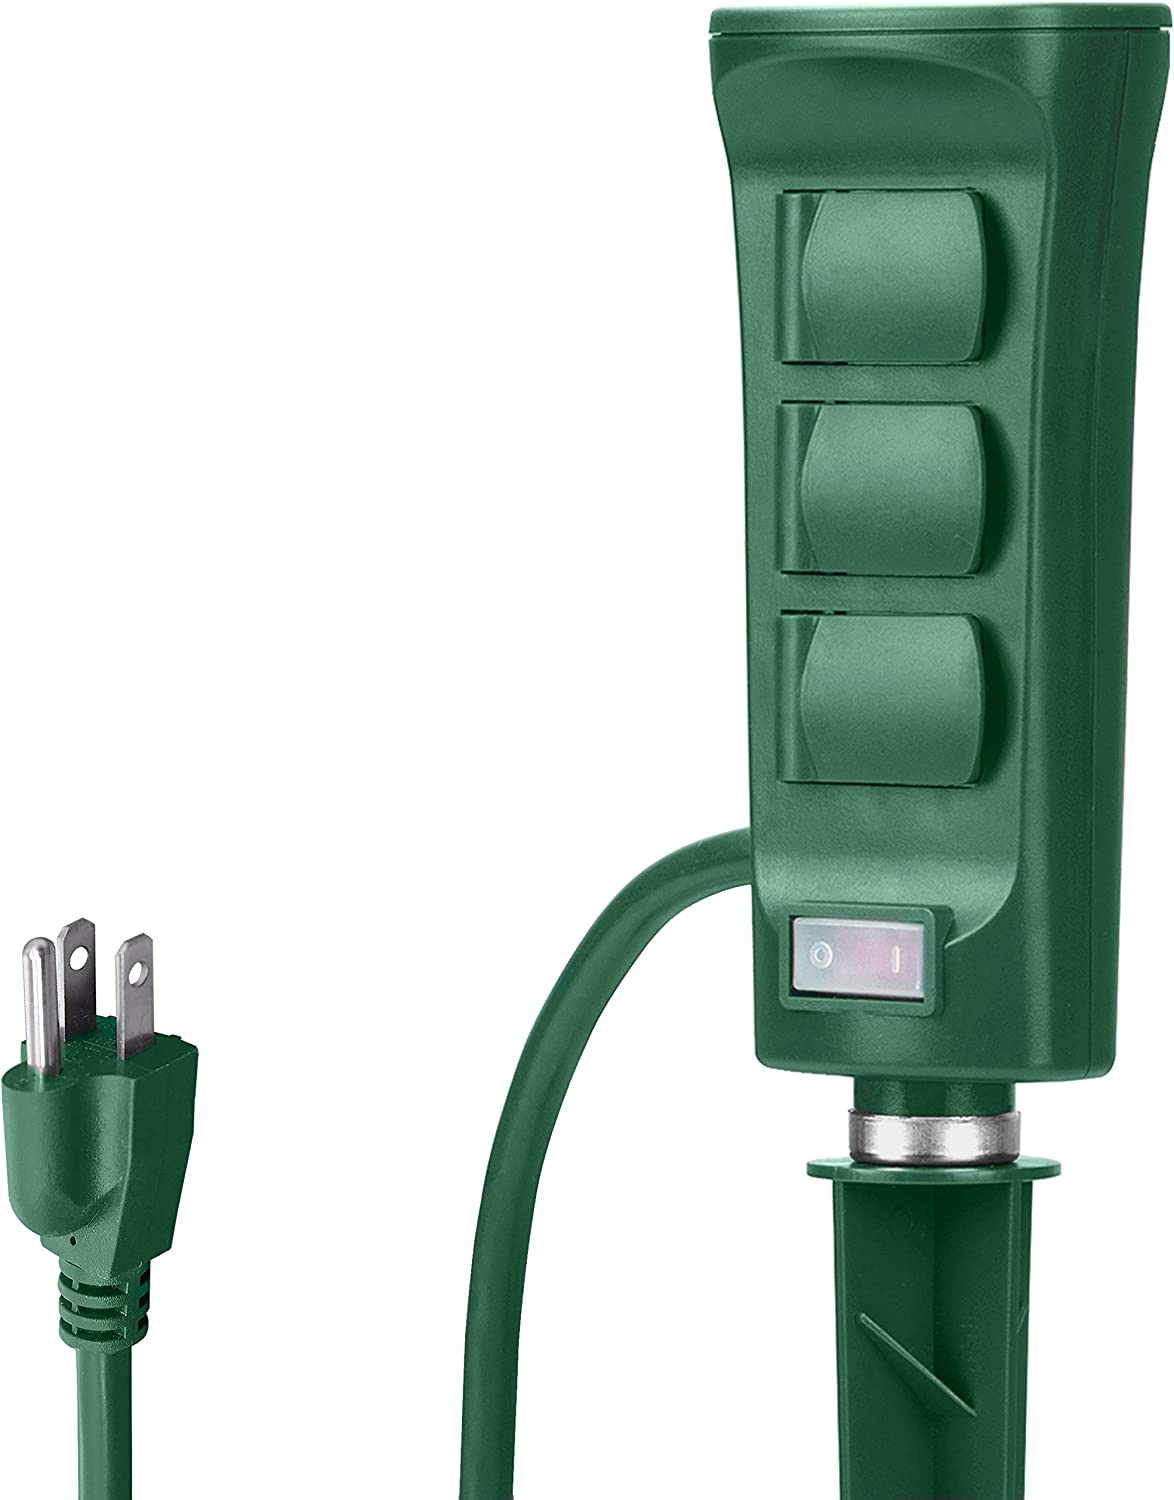 BESTTEN Outdoor Power Stake with 6 Outlets and 9 Foot Extension Cord, Heavy Duty Power Strip with Overload Protection Switch and Weatherproof Protective Covers, ETL Listed, Green